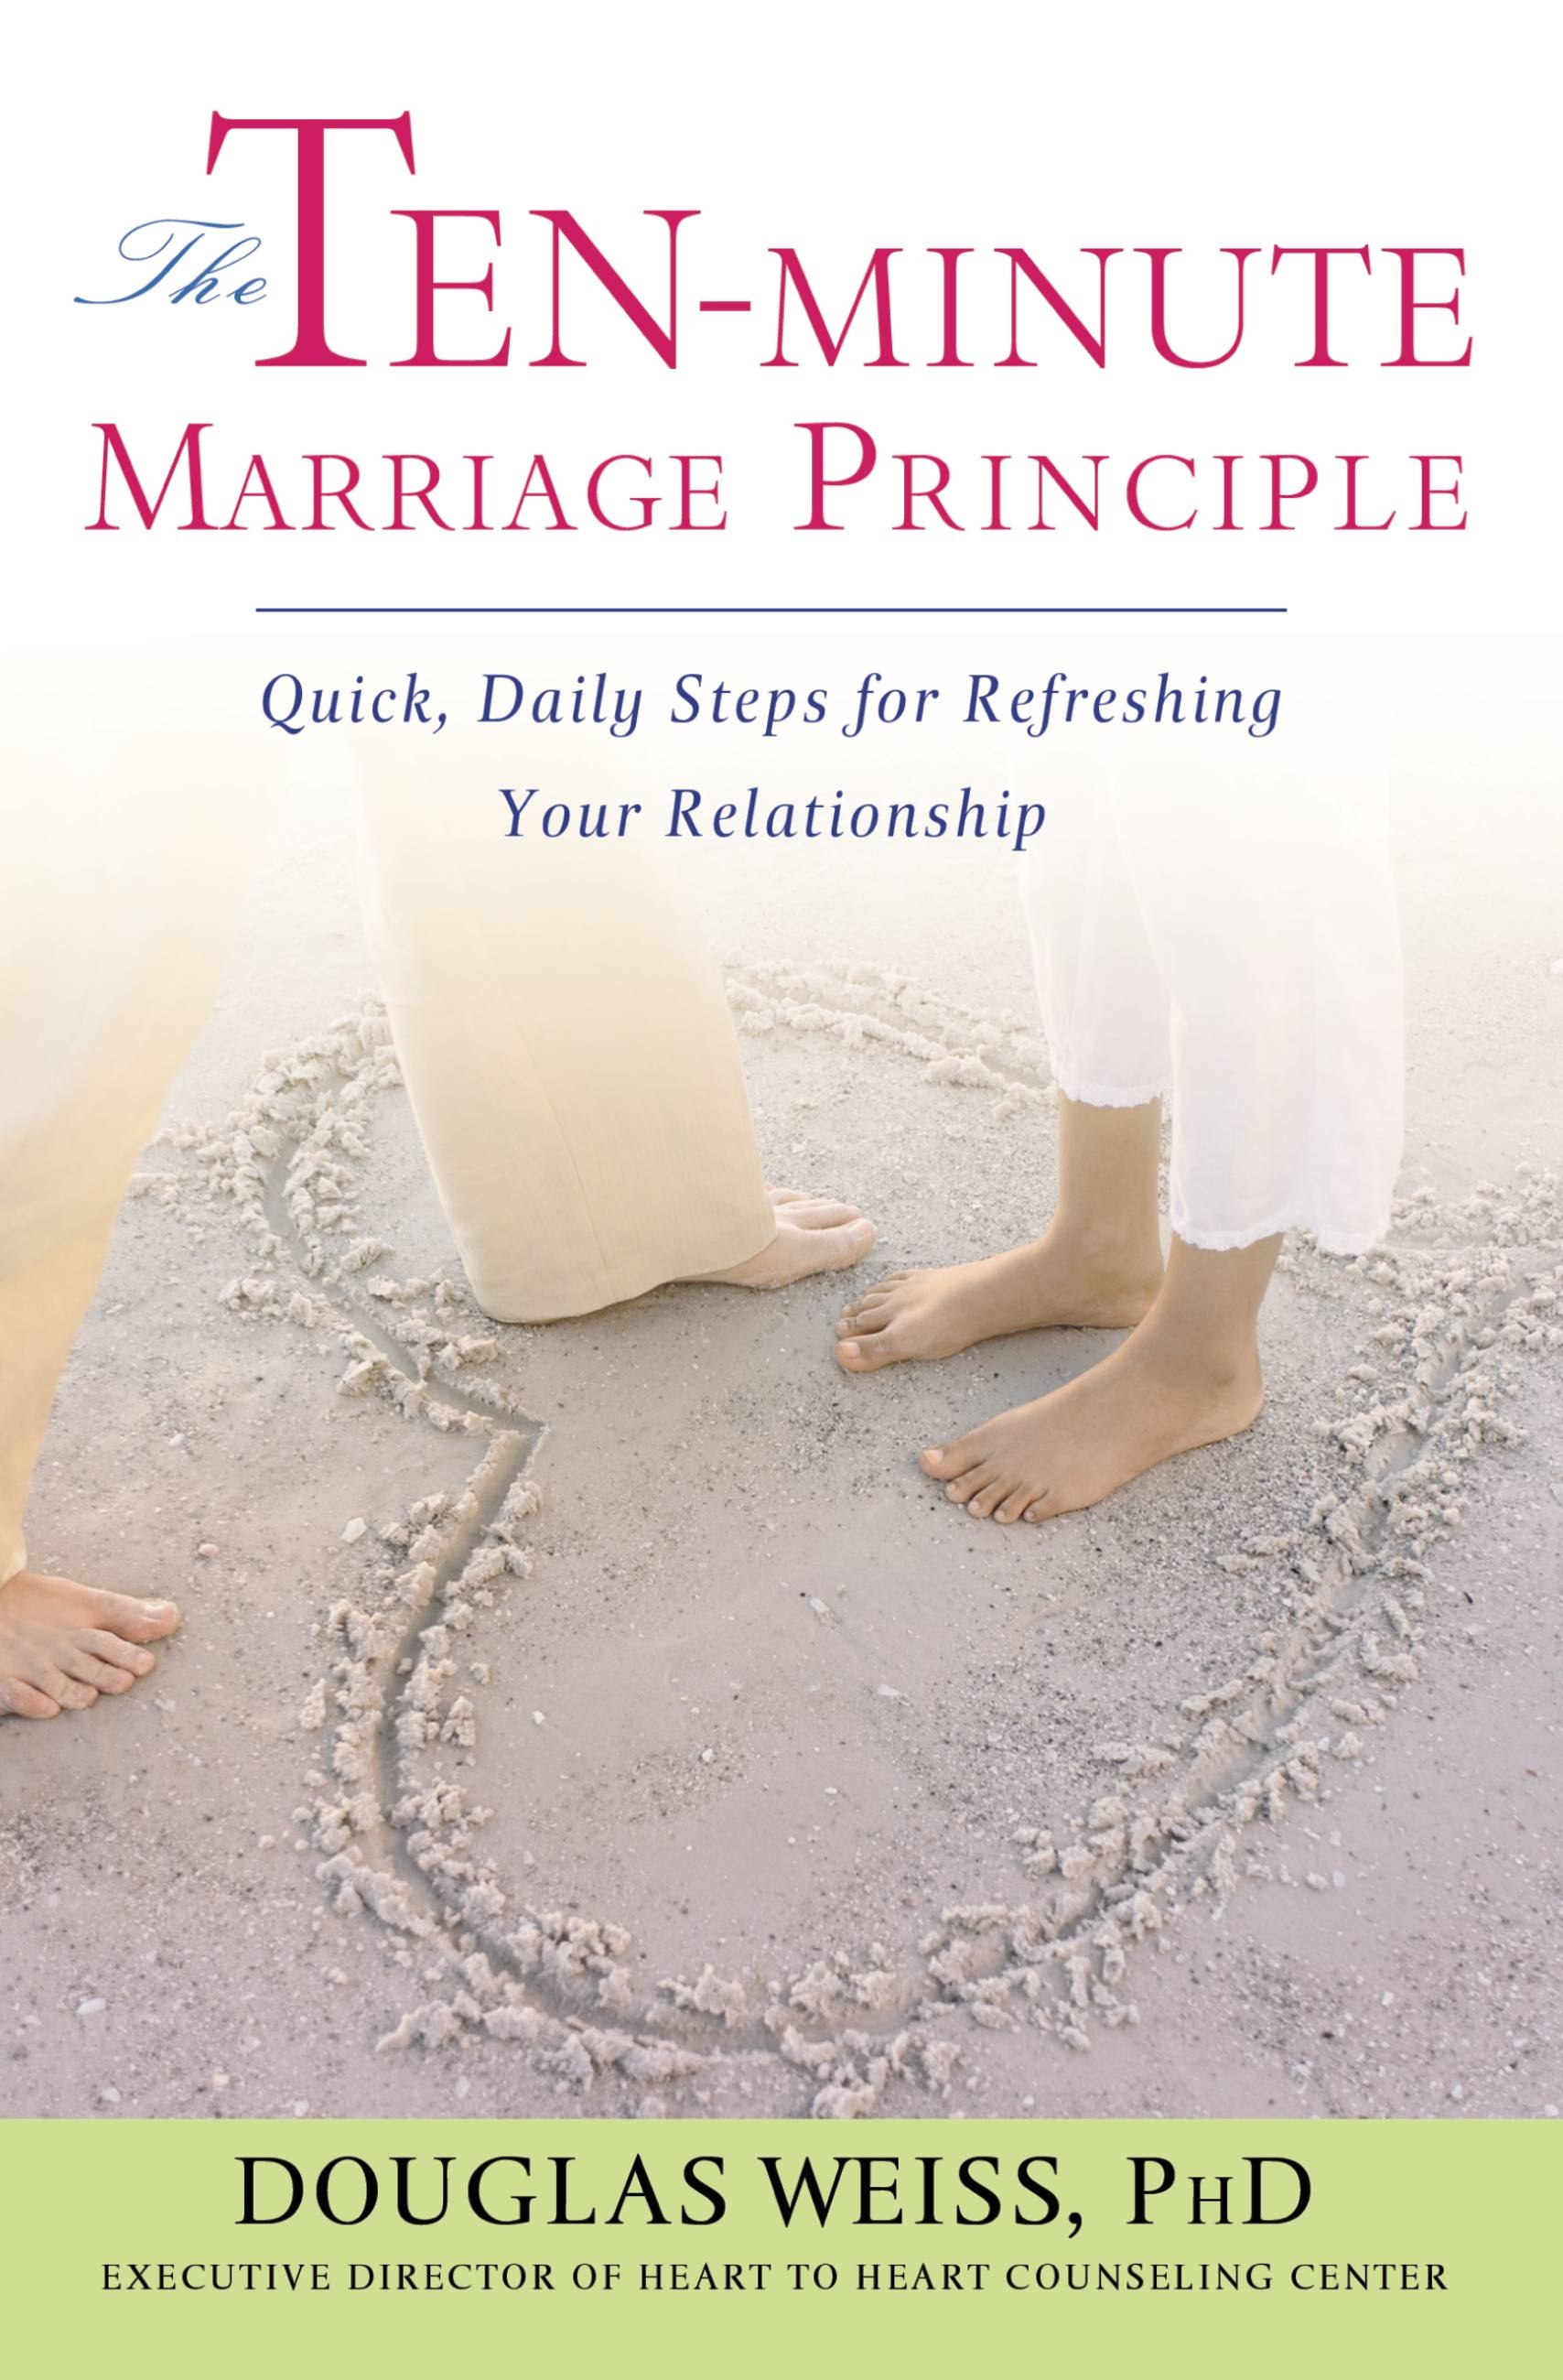 The Ten-Minute Marriage Principle